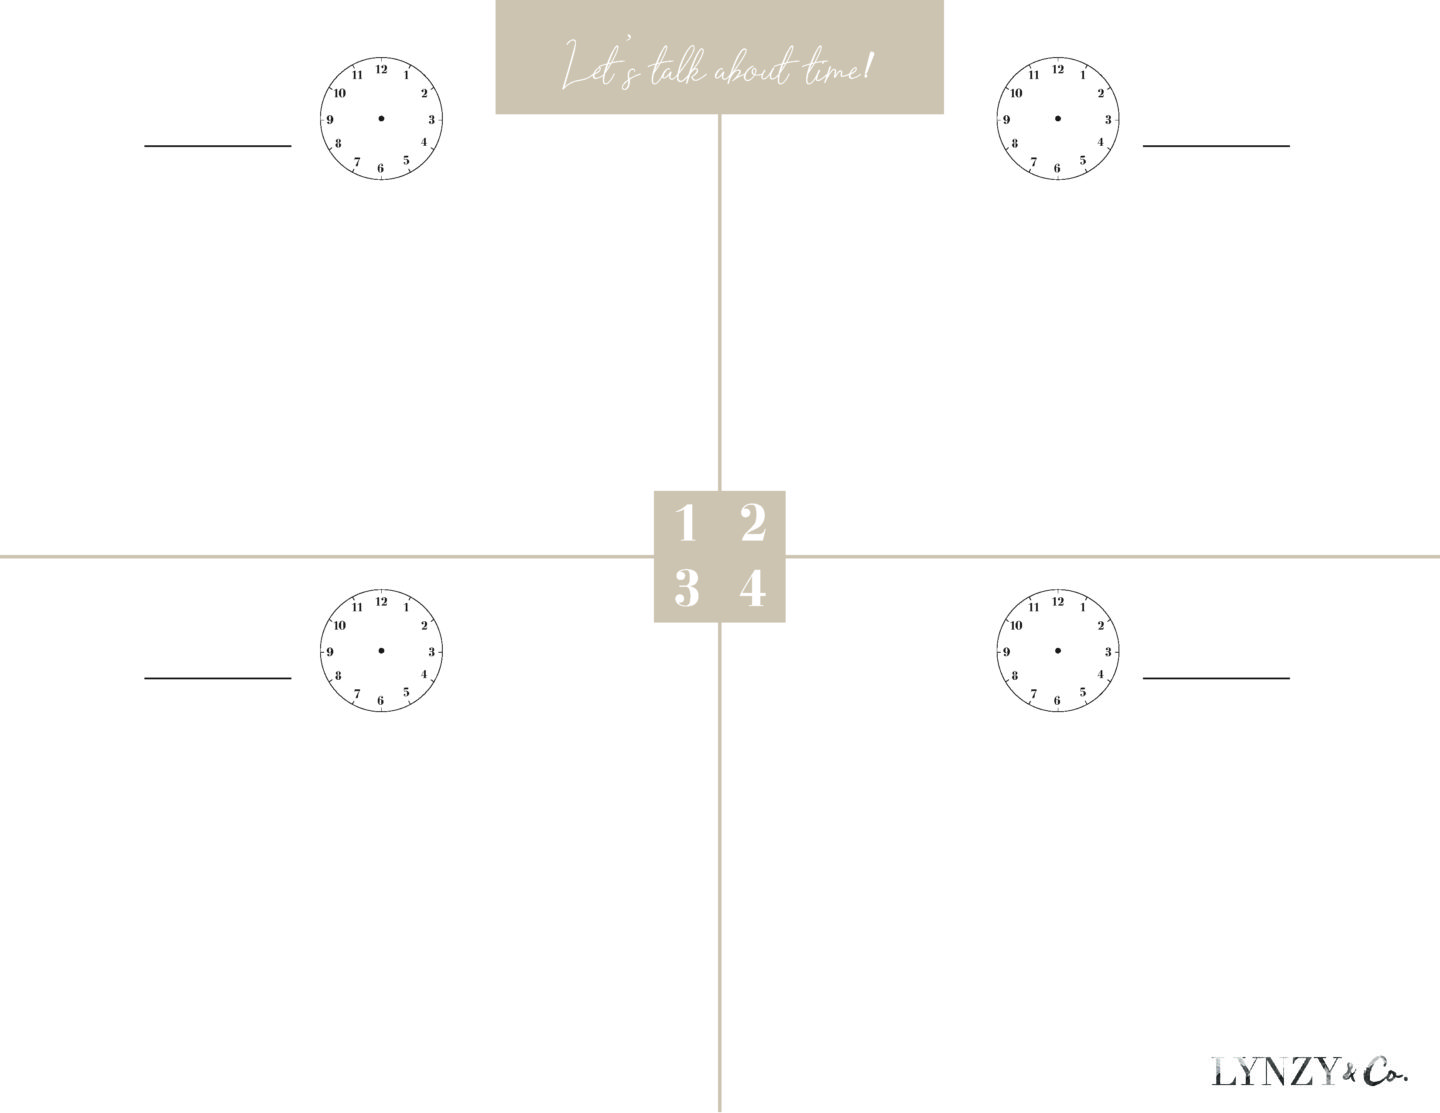 hight resolution of Printable Time Worksheets - Lynzy \u0026 Co.